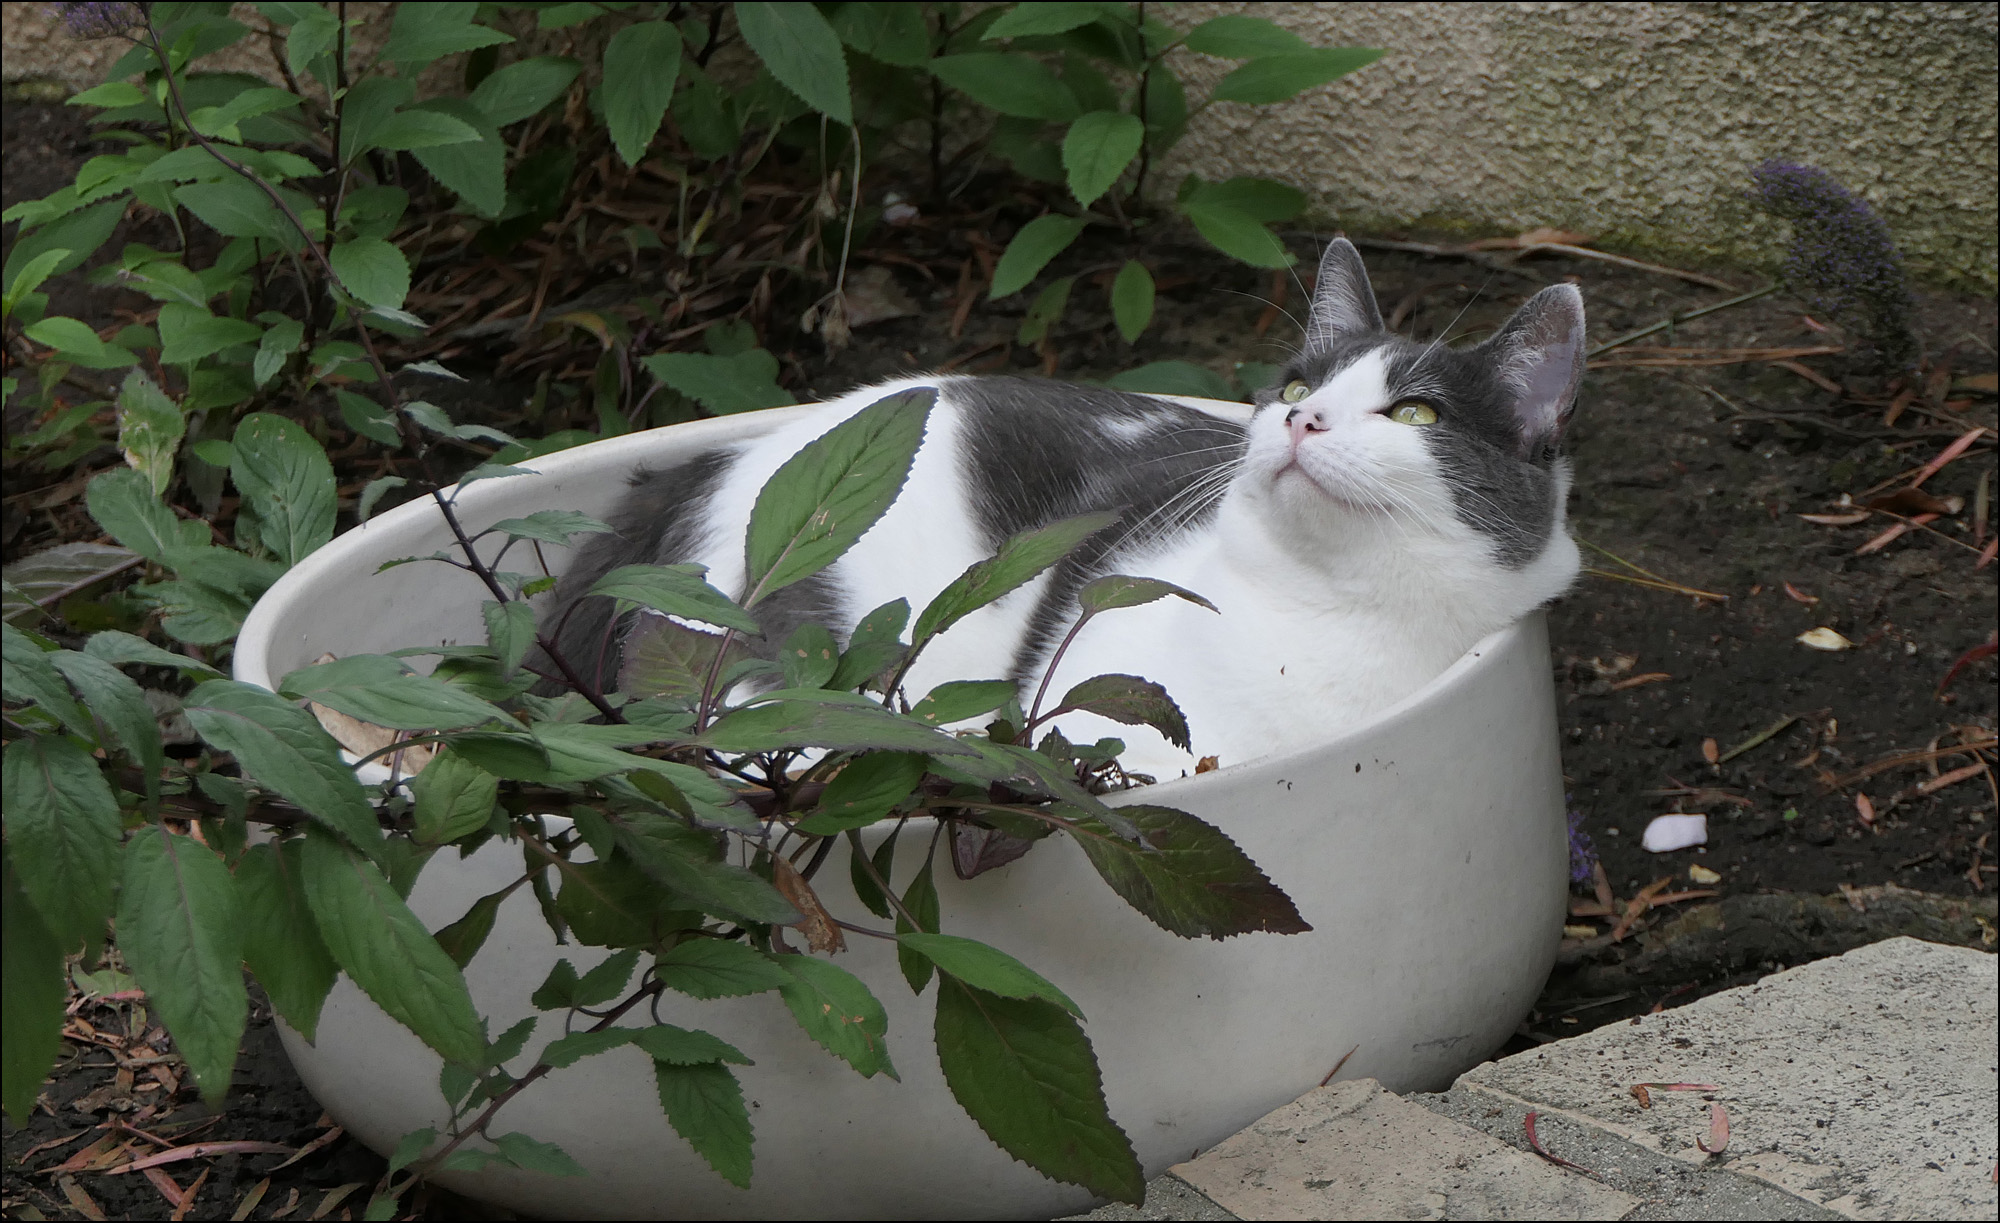 Hmmm If You Plant A Cat In A Pot, Will You Grow More Cats? We're Going To  Find Out! I'll Have The Surprising Answer Next Week